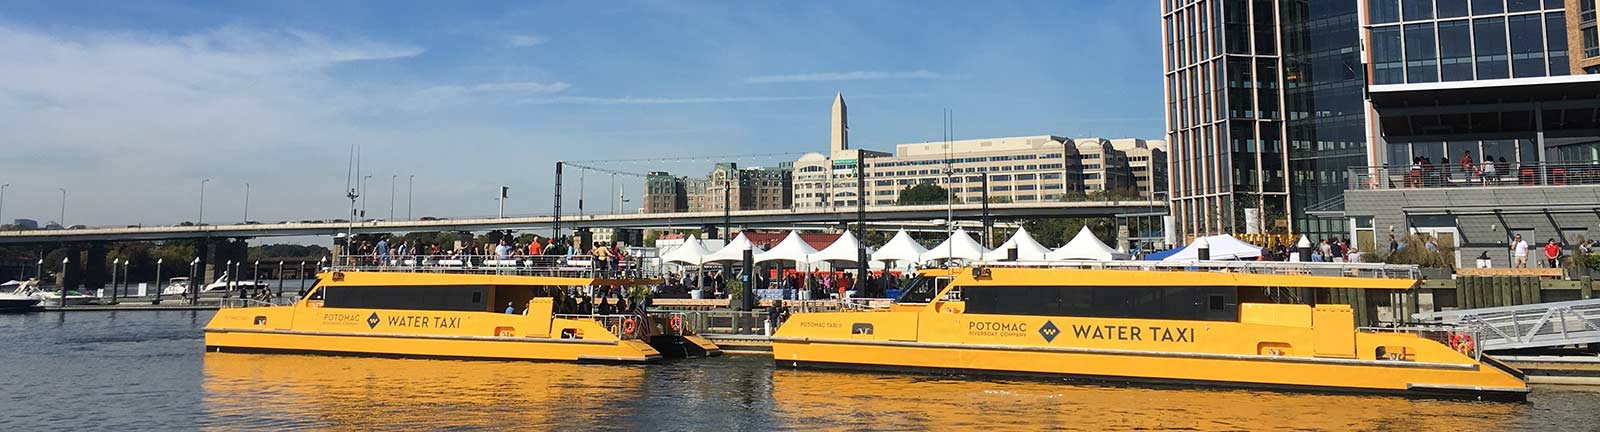 Waterfront Activities & Boat Tours in Washington, DC